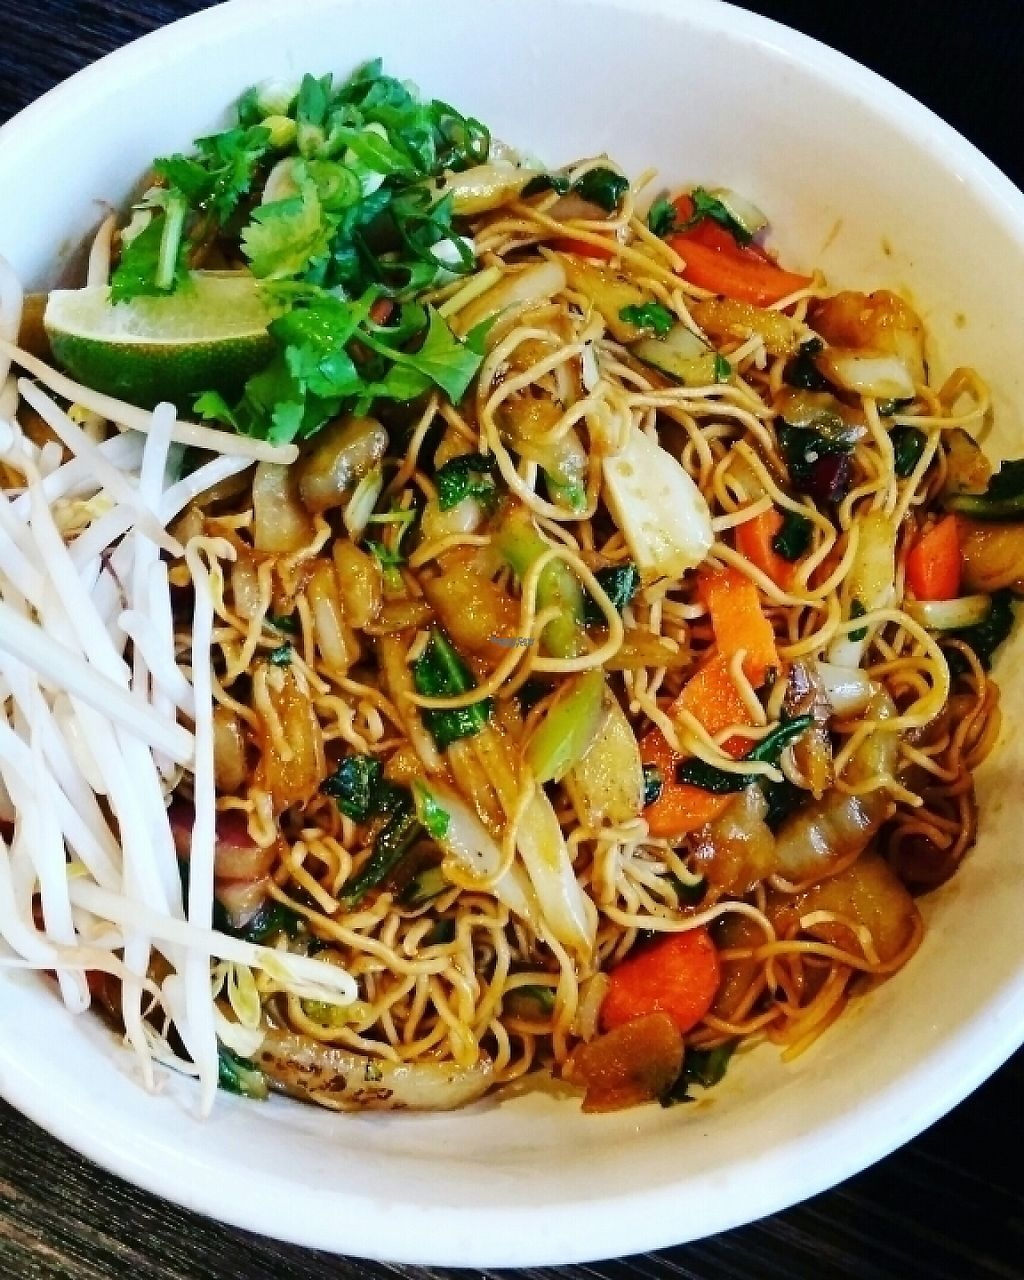 "Photo of Wok Box  by <a href=""/members/profile/AnnaluSkyfire"">AnnaluSkyfire</a> <br/>Vegan Spicy Hong Kong Style Noodle Box <br/> November 23, 2016  - <a href='/contact/abuse/image/24579/193363'>Report</a>"